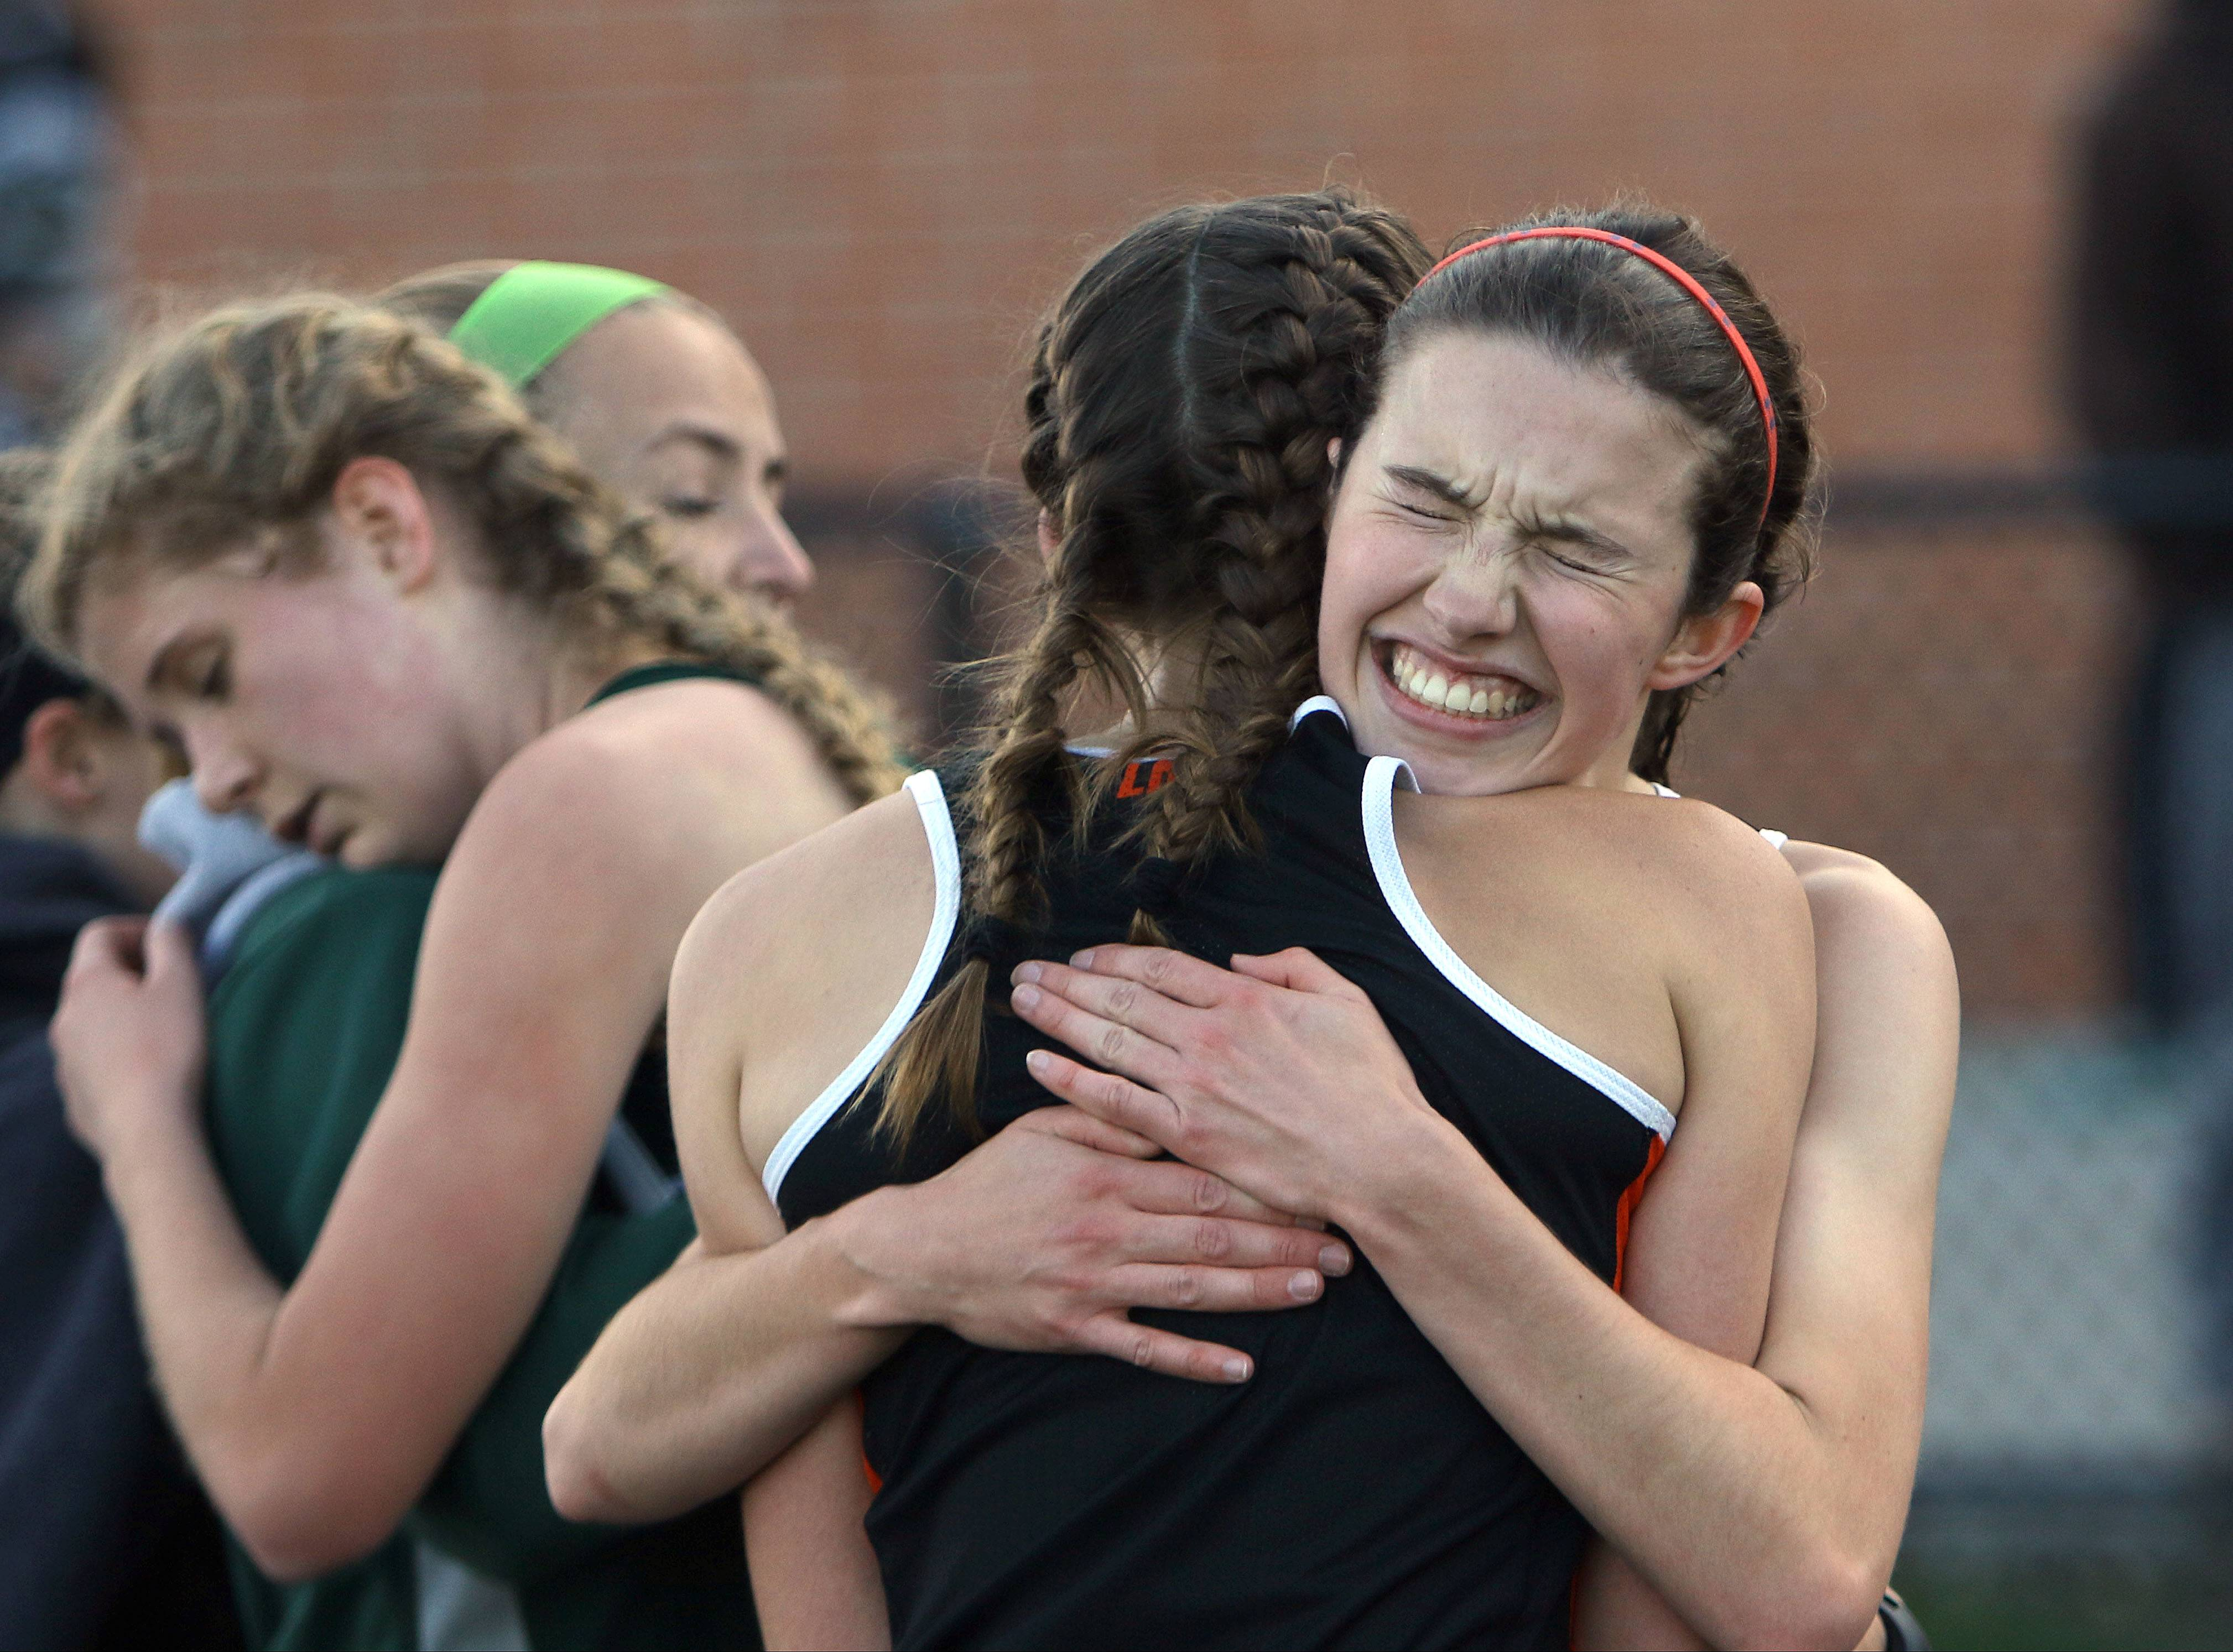 Libertyville's Melissa Manetsch, right, hugs Sarah Townsend after winning the 3,200-meter run during the Lake County meet Friday at Grayslake North High School.